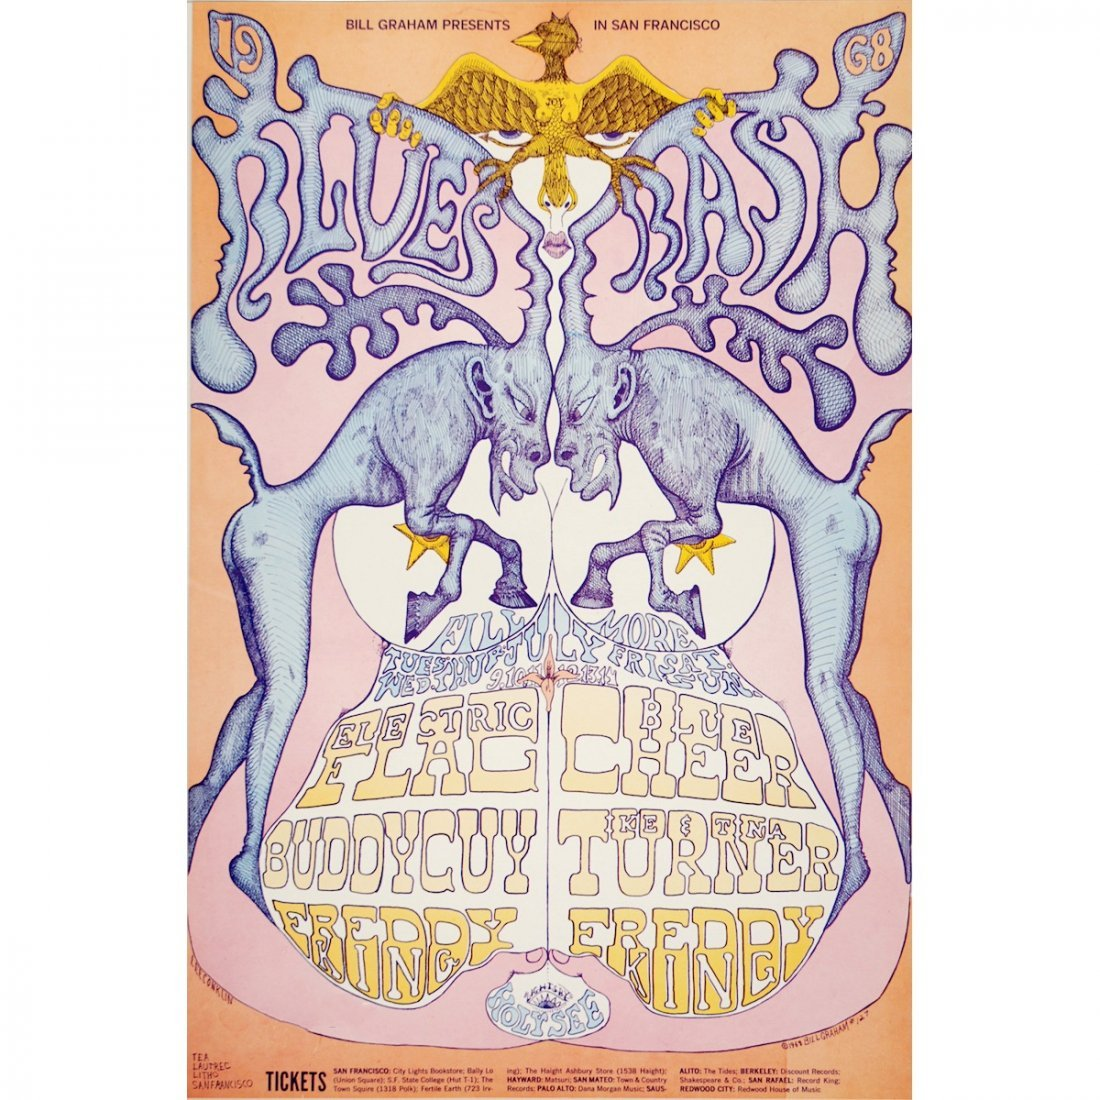 Blue Cheer - Buddy Guy - 1968 Concert Poster